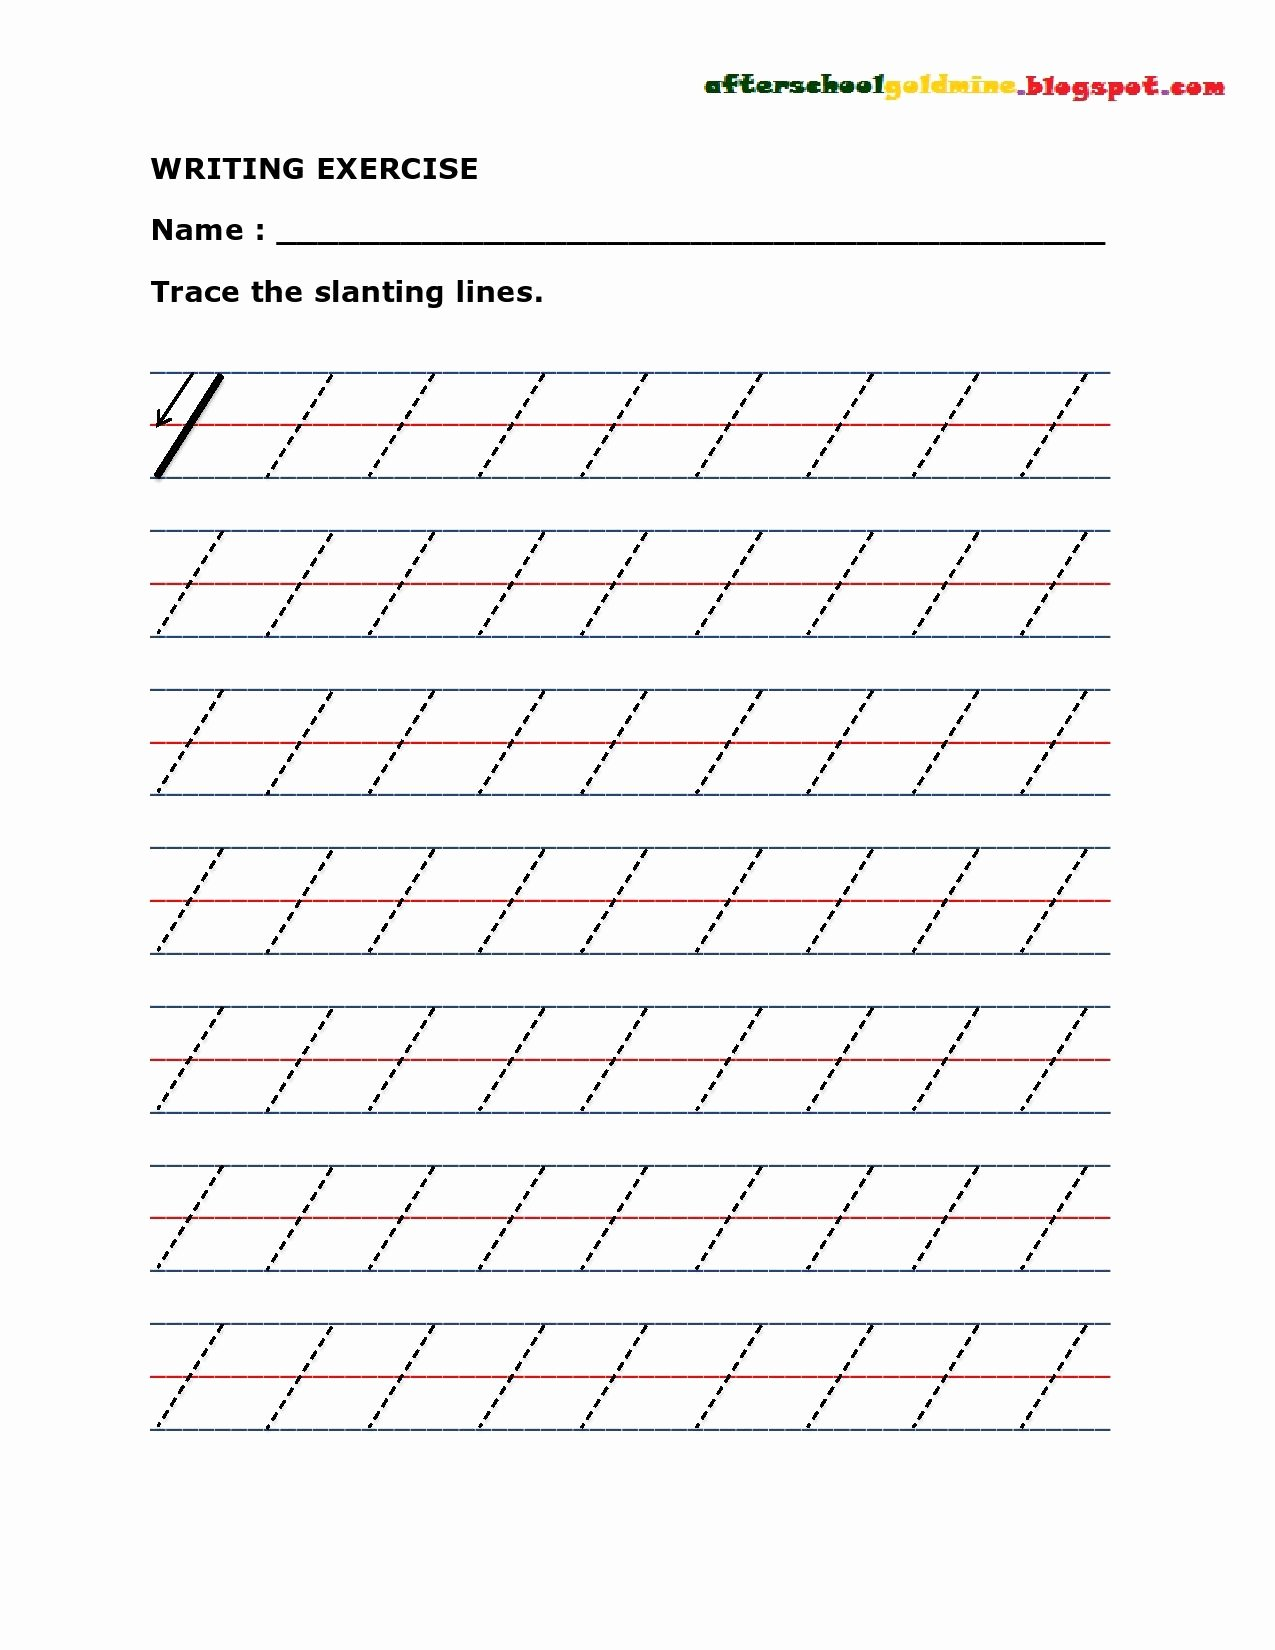 Slanting Lines Worksheets for Preschoolers Lovely Practice Writing Slanting or Diagonal Lines